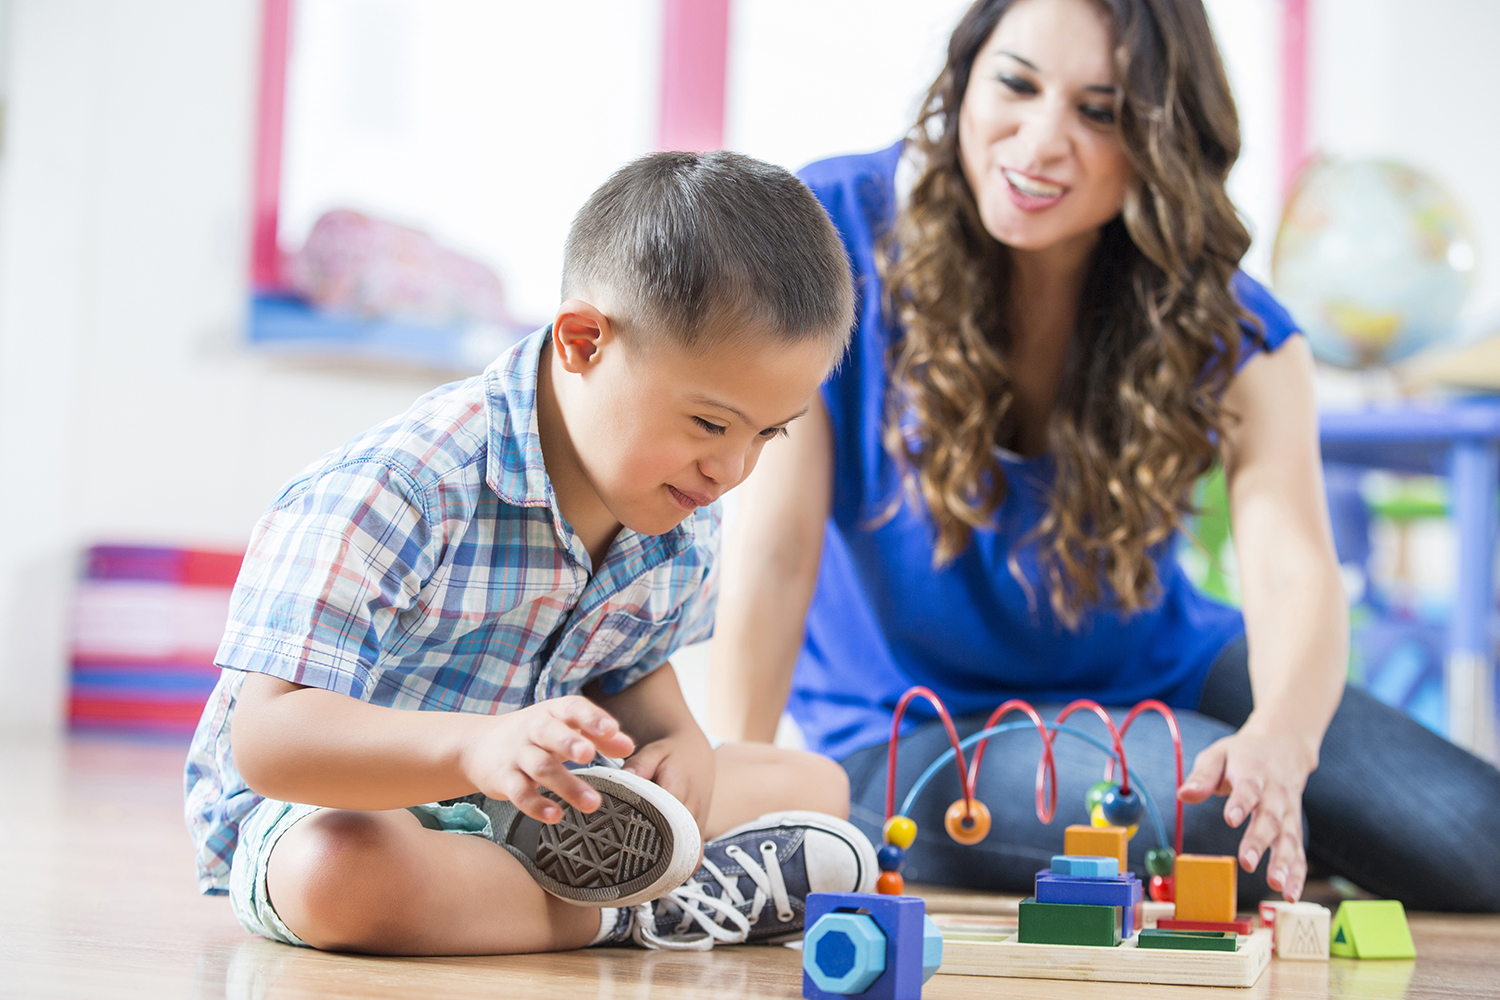 Sweet little Hispanic boy with Down Syndrome sits cross legged on the floor of a daycare center and reaches for toys. His female Hispanic young adult teacher sits on the floor with him and reaches for a different toy.